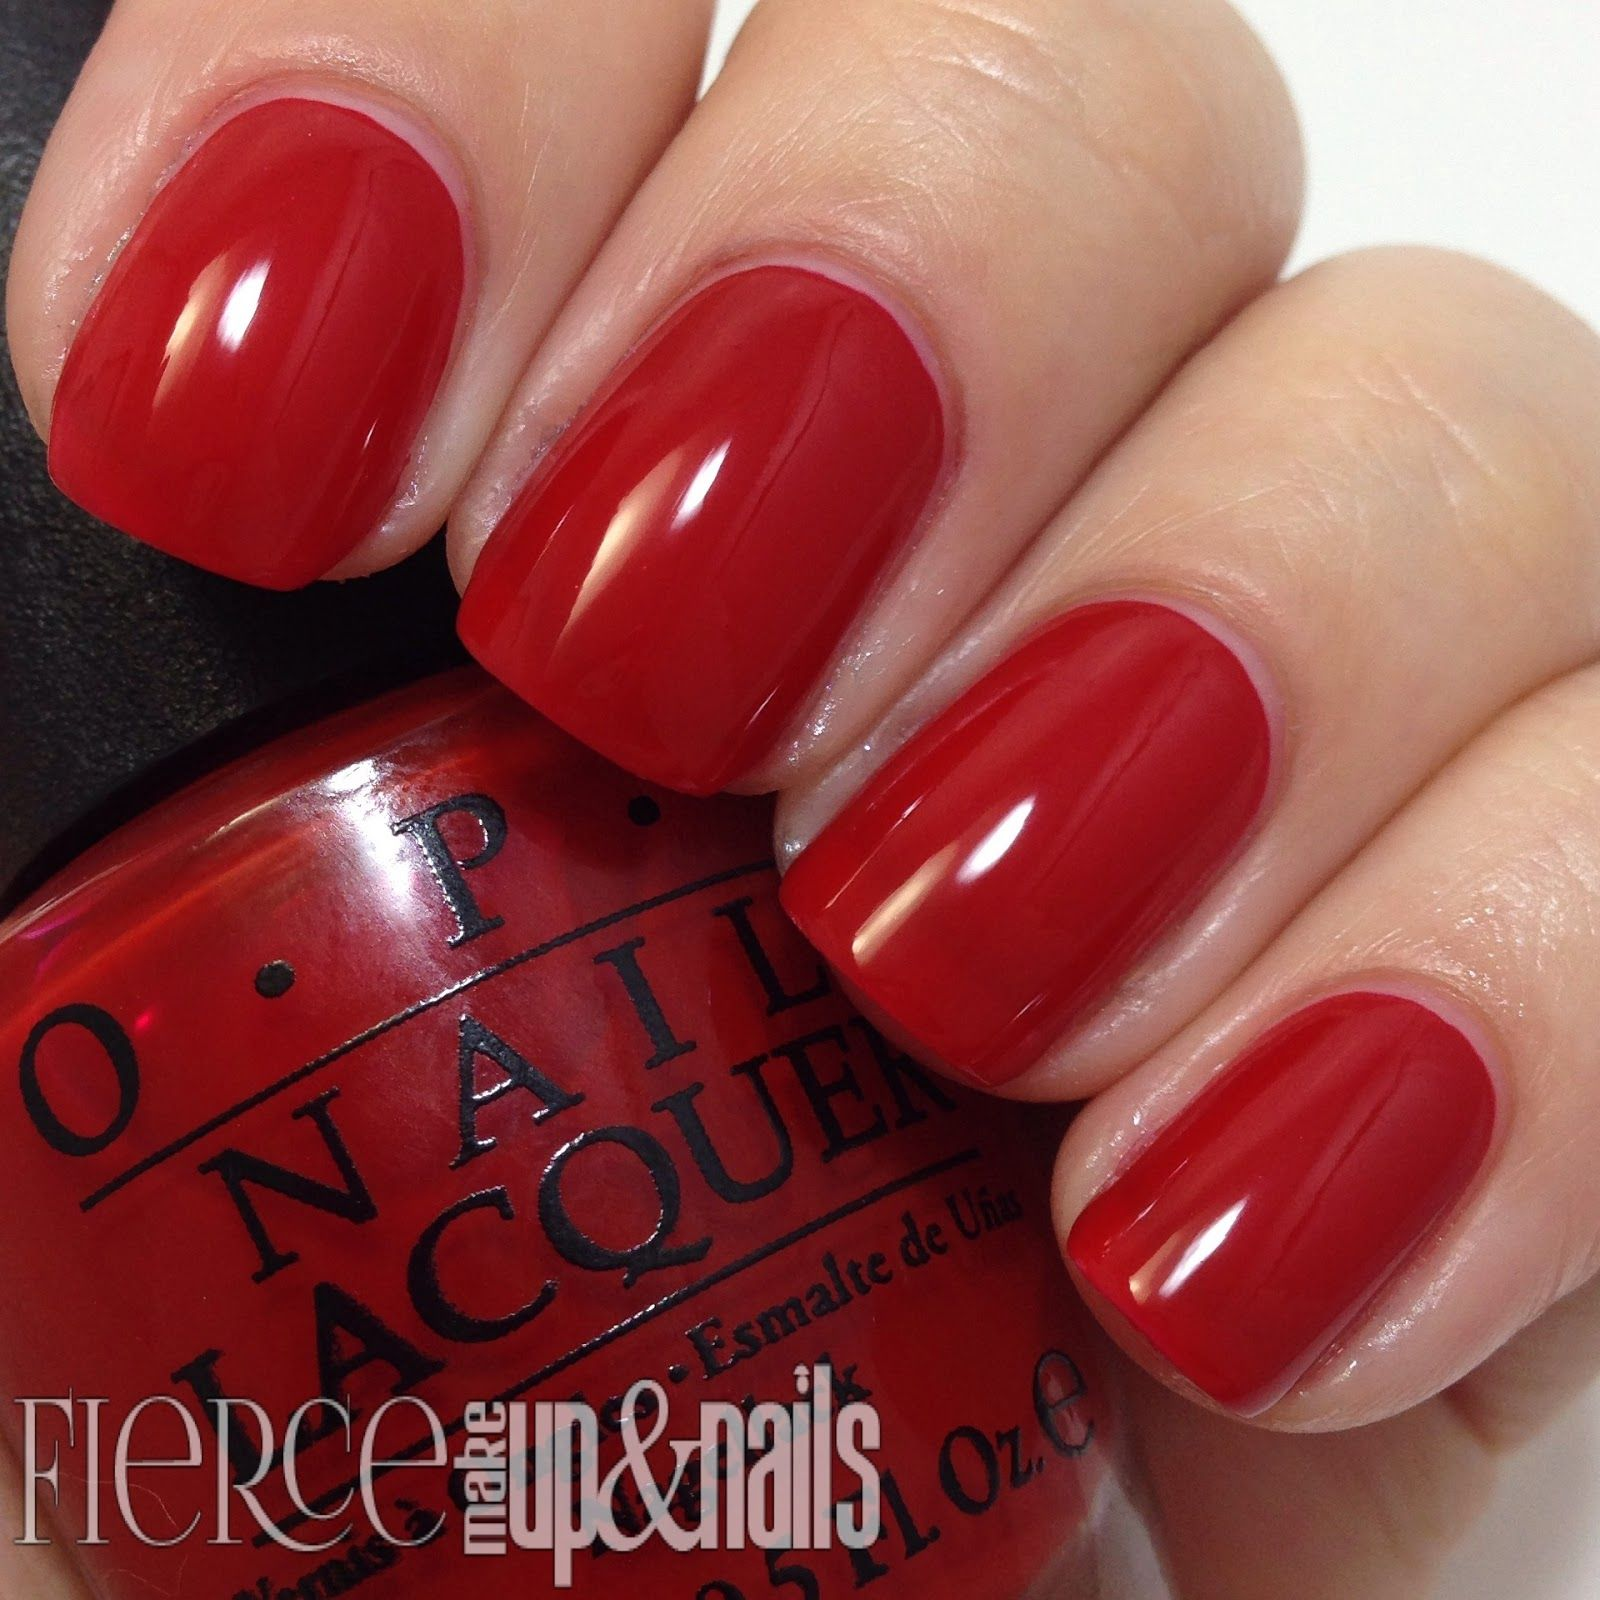 666738d6b34c6 OPI Spring/Summer Brazil Collection: Red Hot Rio @OPI Products ...